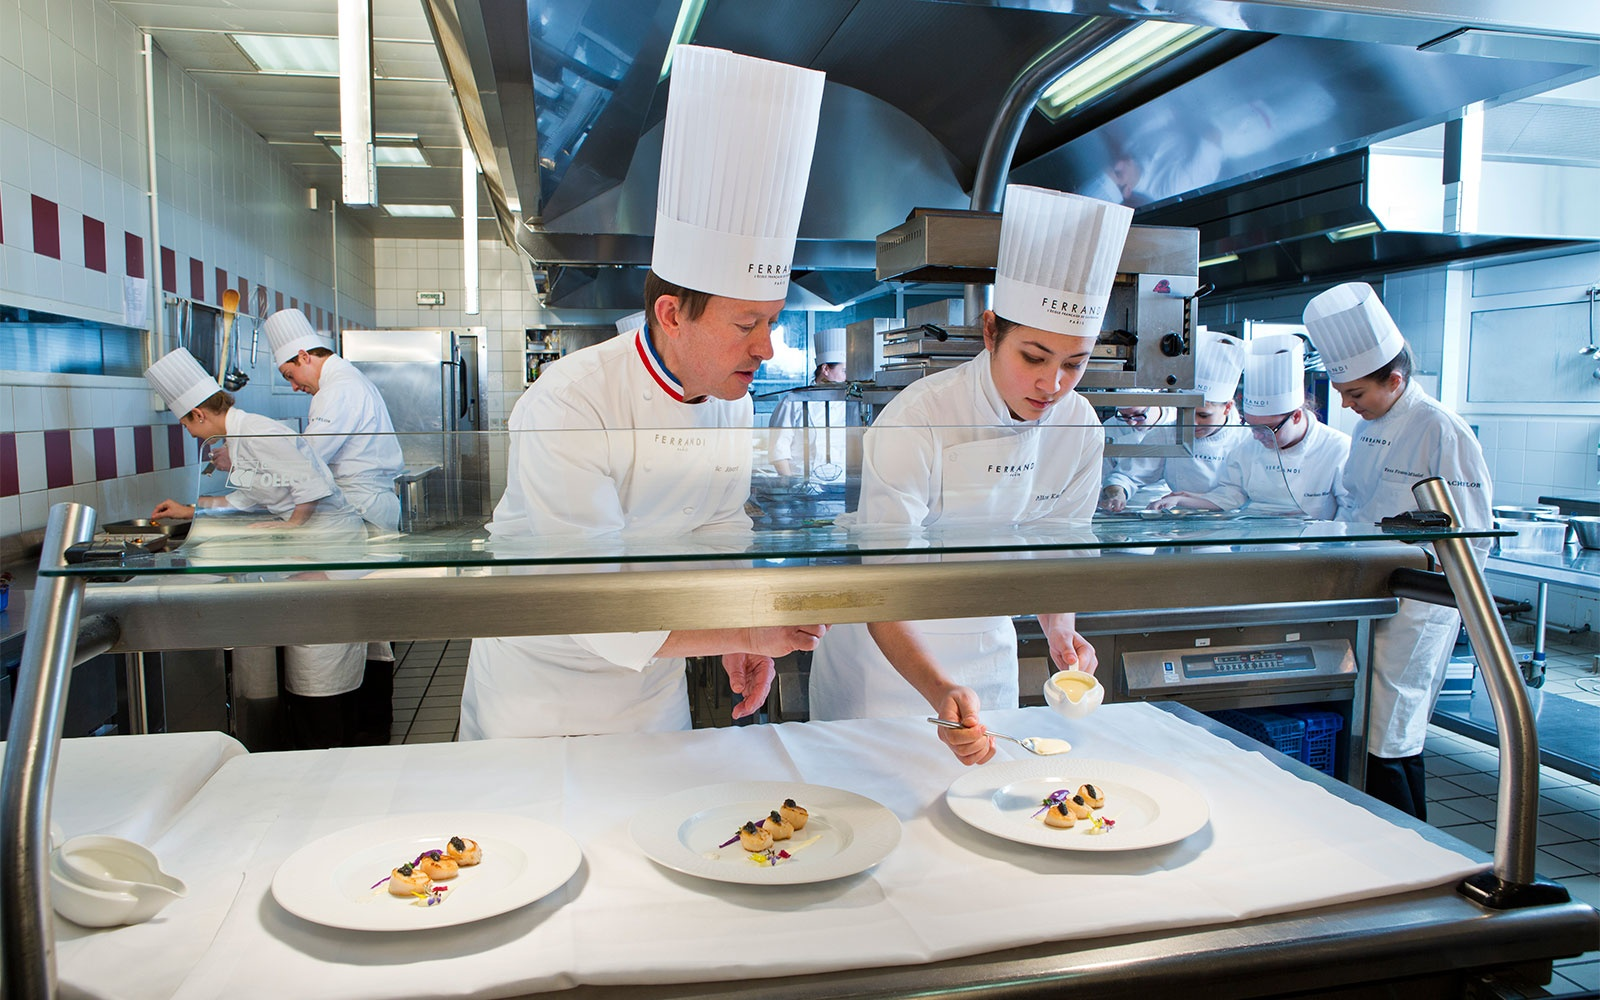 students at Ferrandi-Paris culinary school, Paris